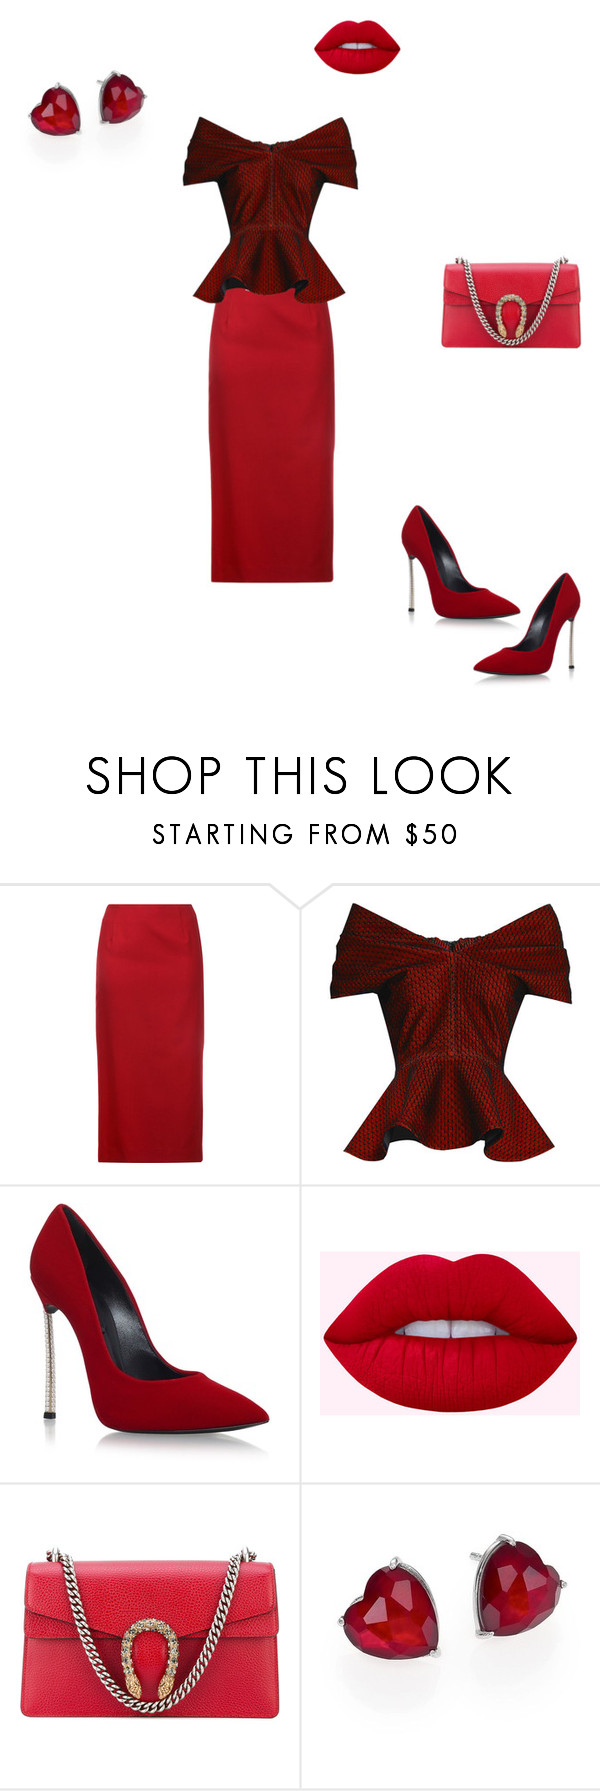 """""""red passion"""" by viktoria-flame ❤ liked on Polyvore featuring Le Ciel Bleu, Emilio De La Morena, Casadei, Gucci, Adriana Orsini, red, fashionset, redfashionset and redisnevertoomuch"""